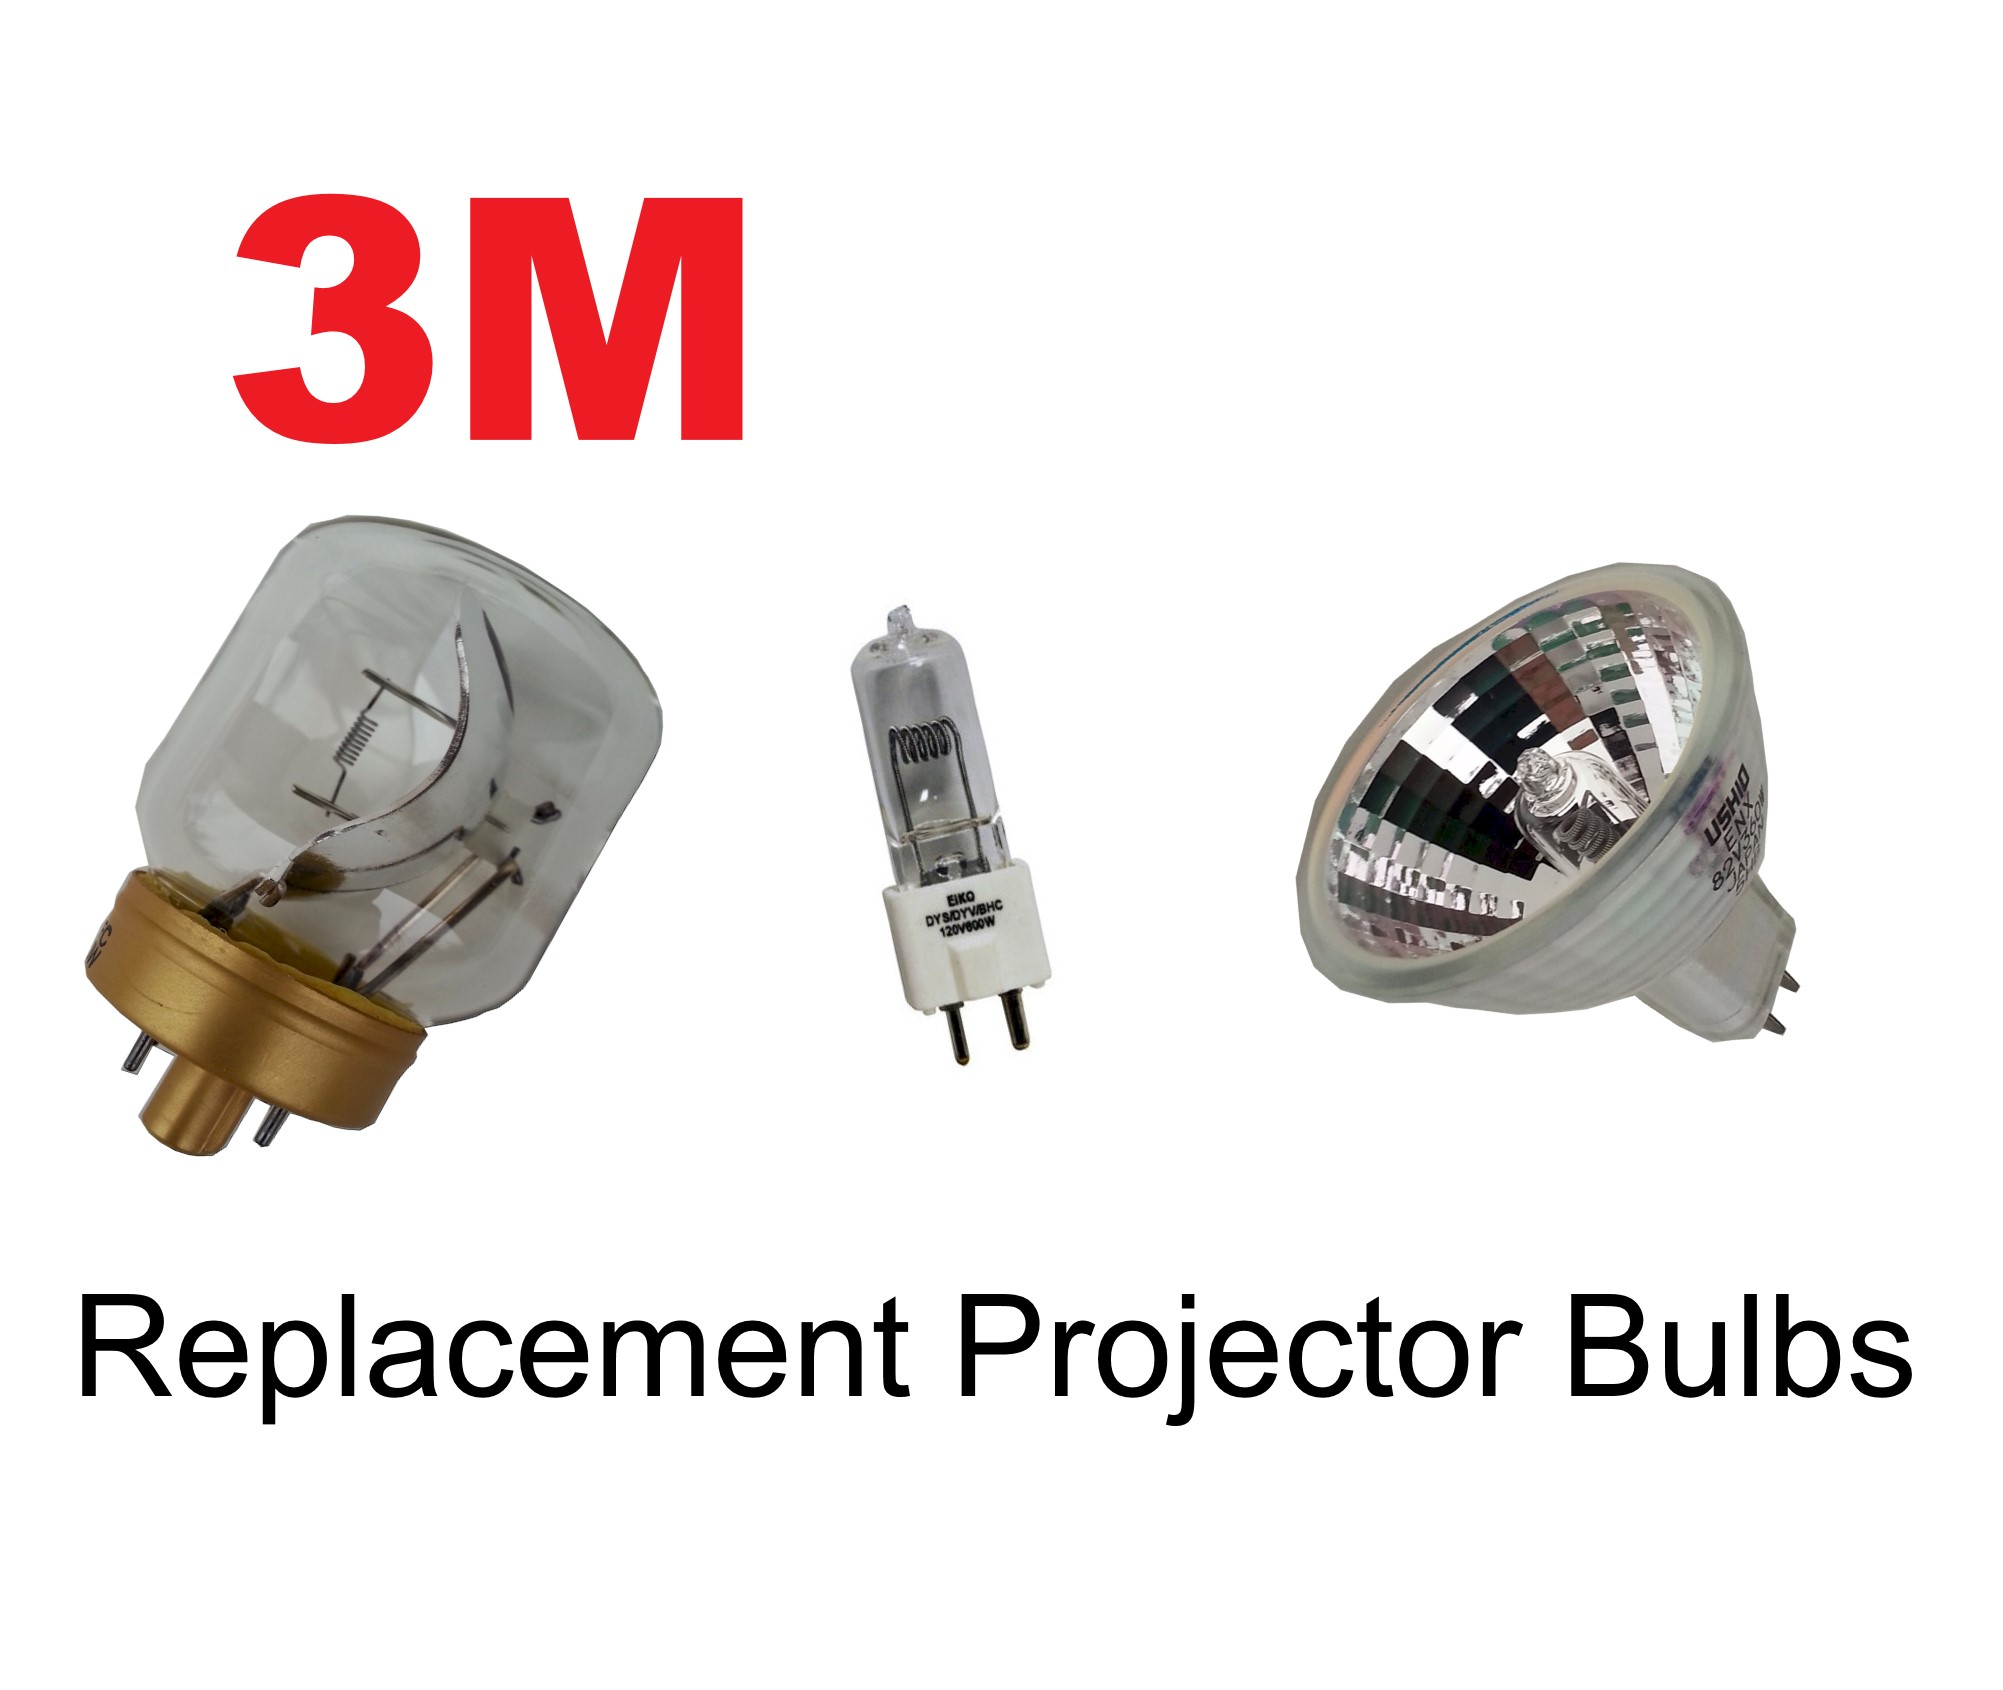 3M Projector Bulbs | In Stock At Low Prices | Bulb Source